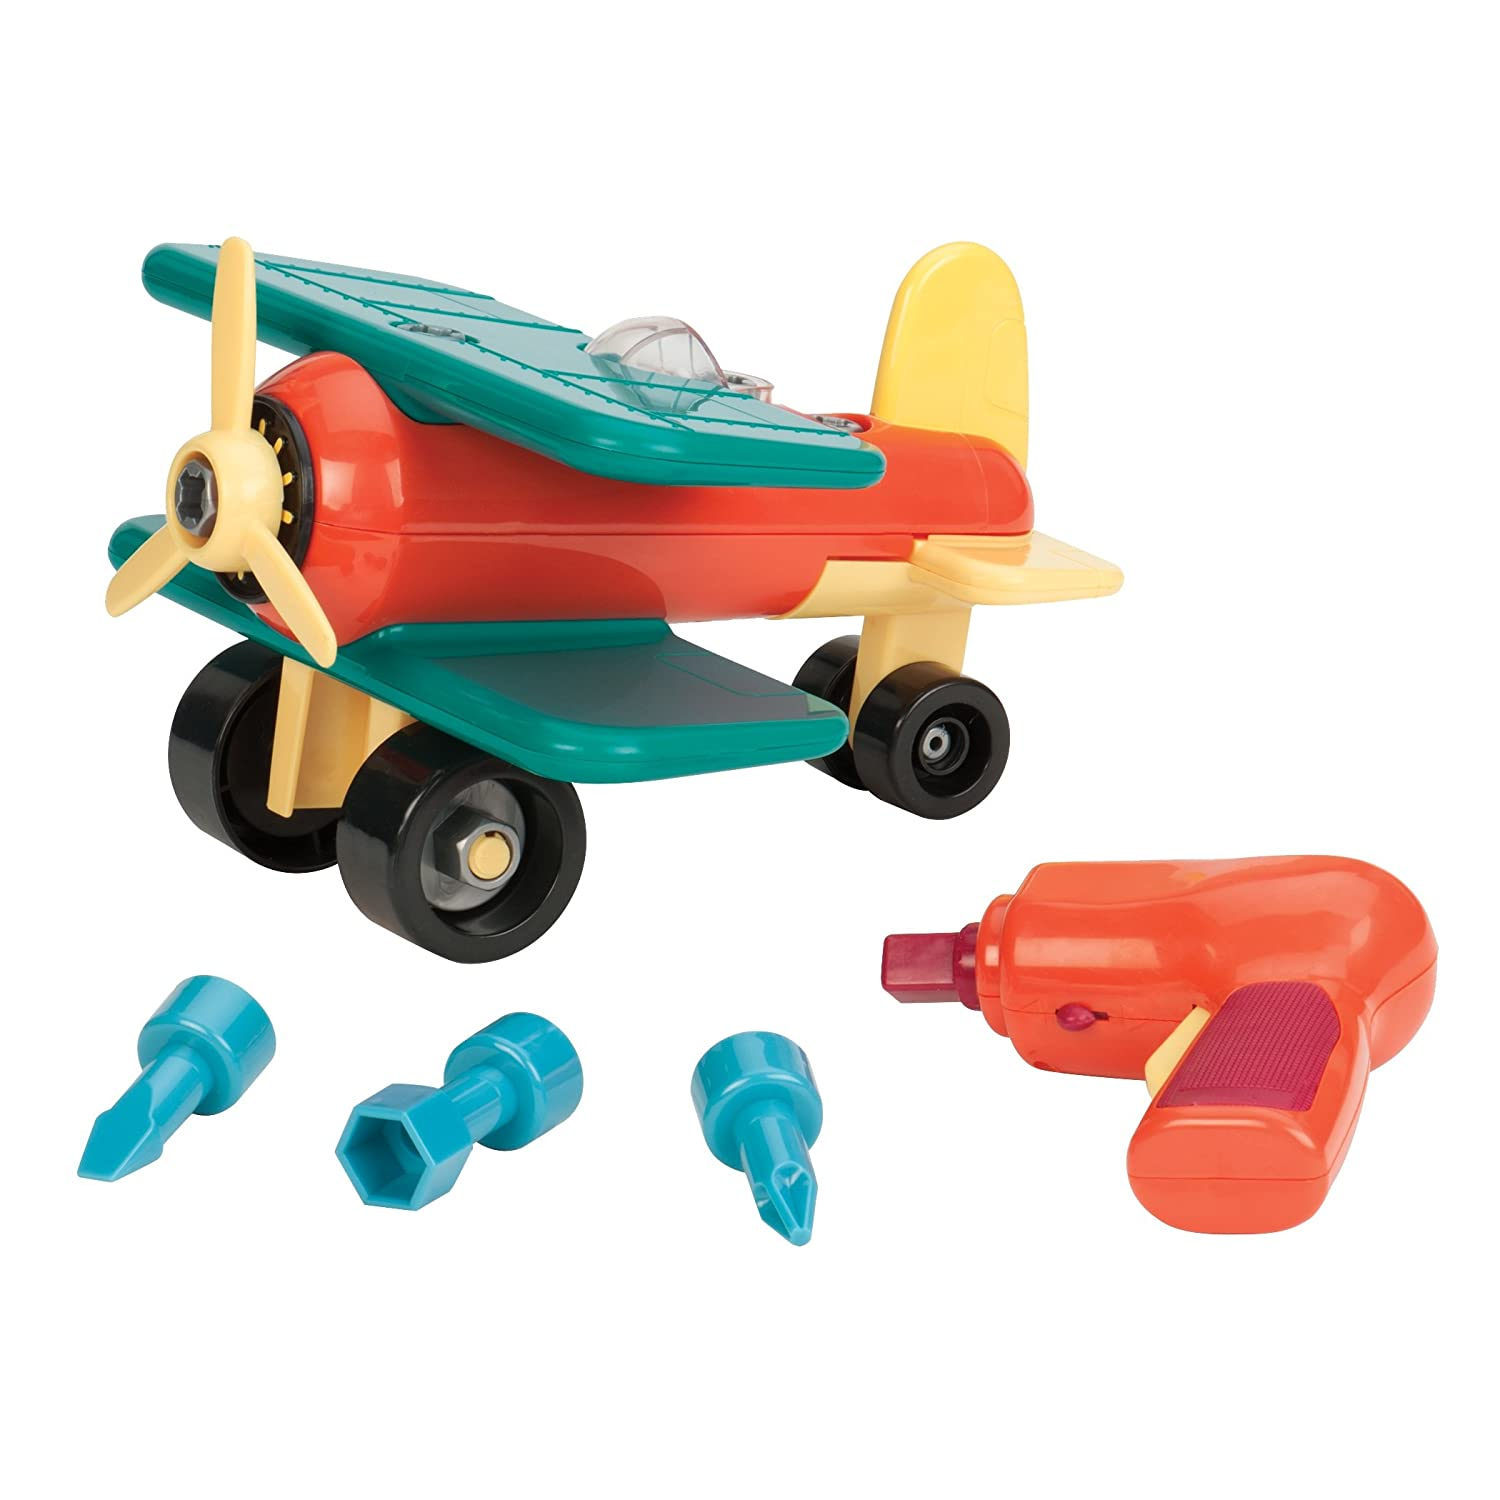 Battat Take Apart Airplane Construction Toy Vehicle Borgfeldt BT2457DTZ